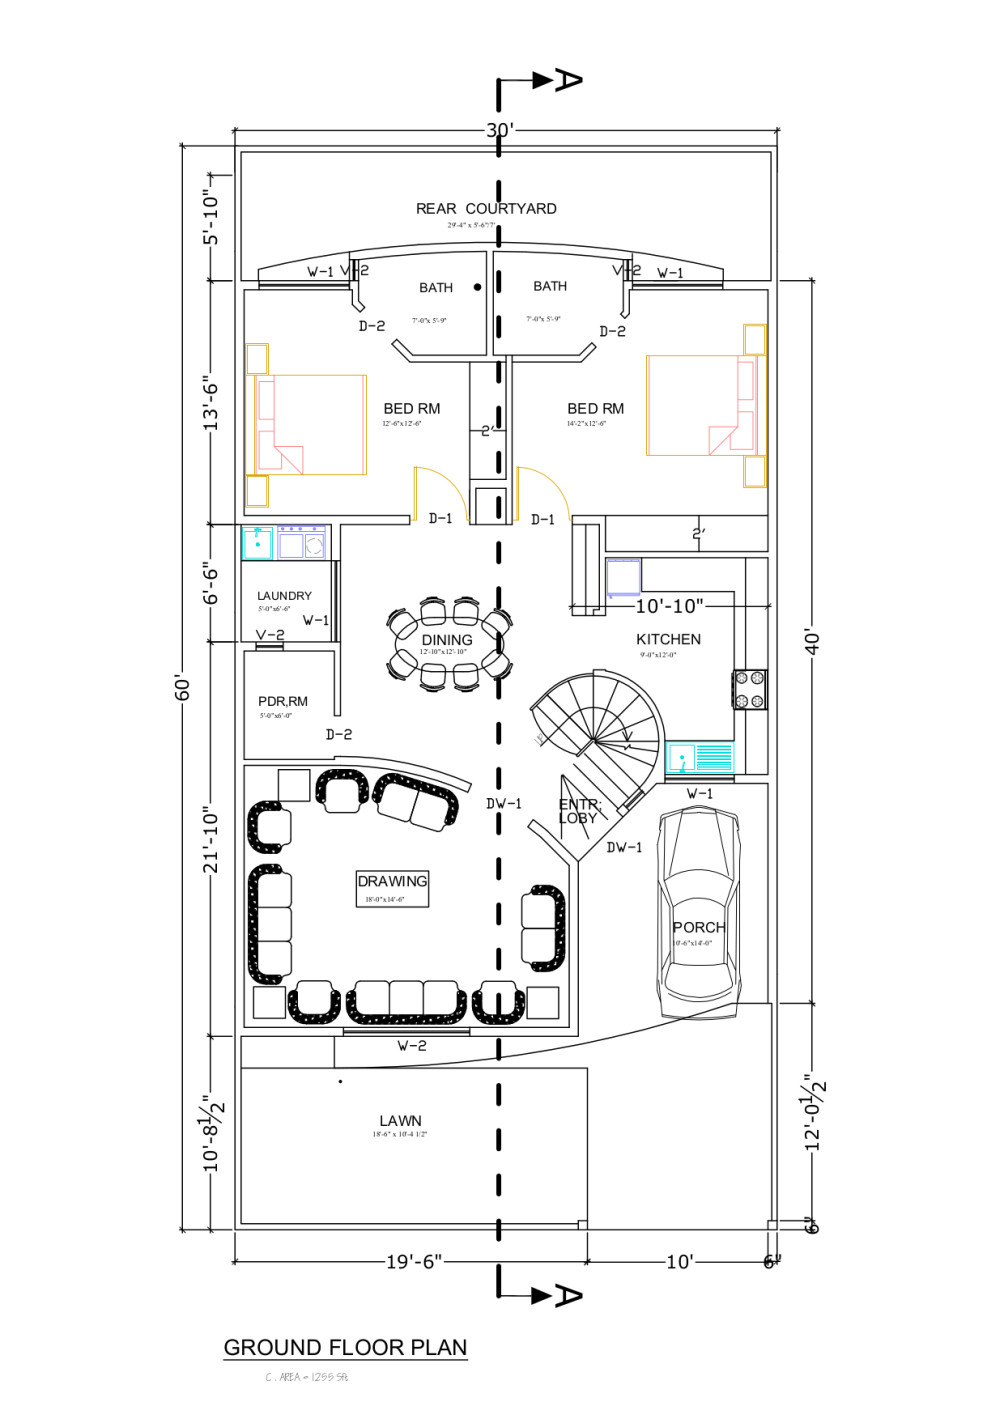 Design A House With Very Fast Delivery By Moeen94 Uzi Schematic